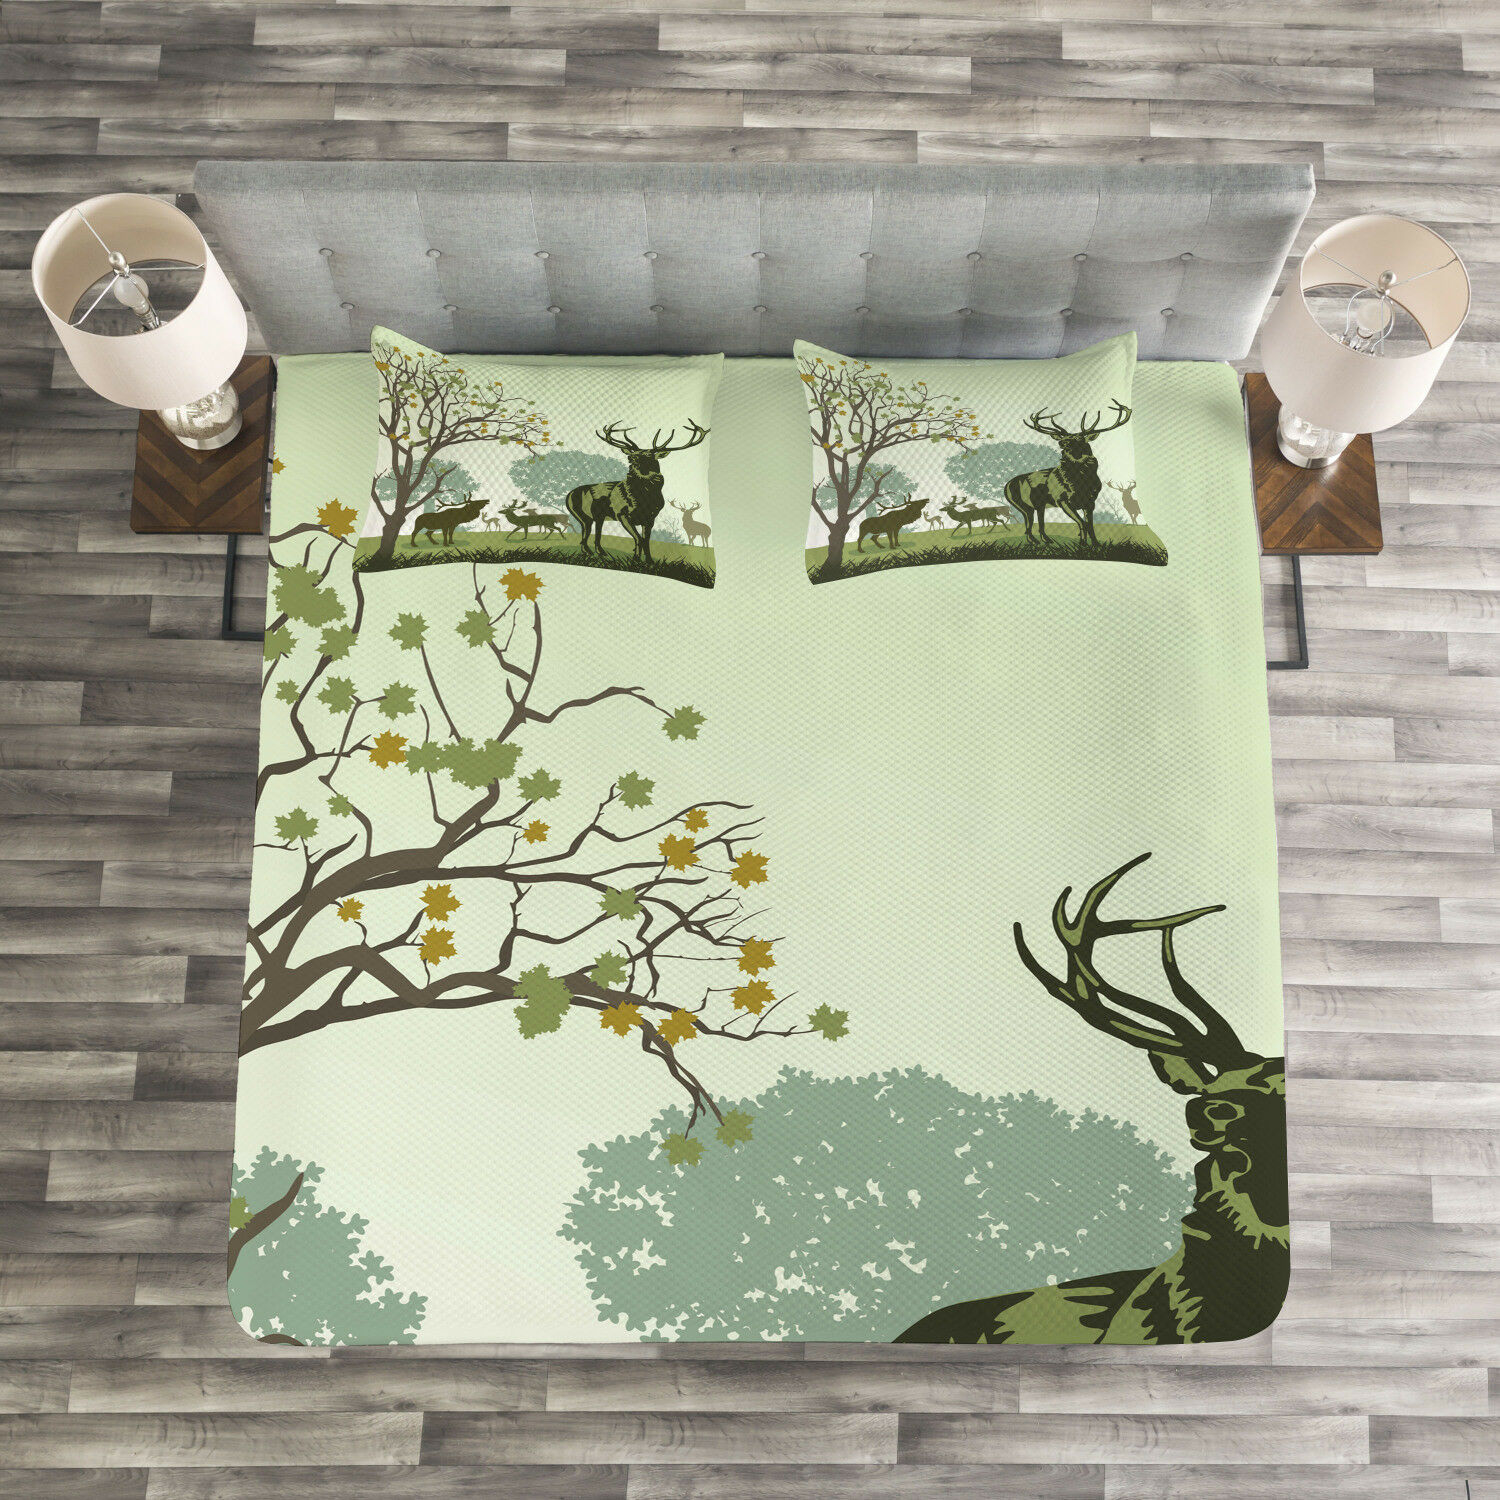 Green Quilted Bedspread & Pillow Shams Set, Deer and Nature Park Print